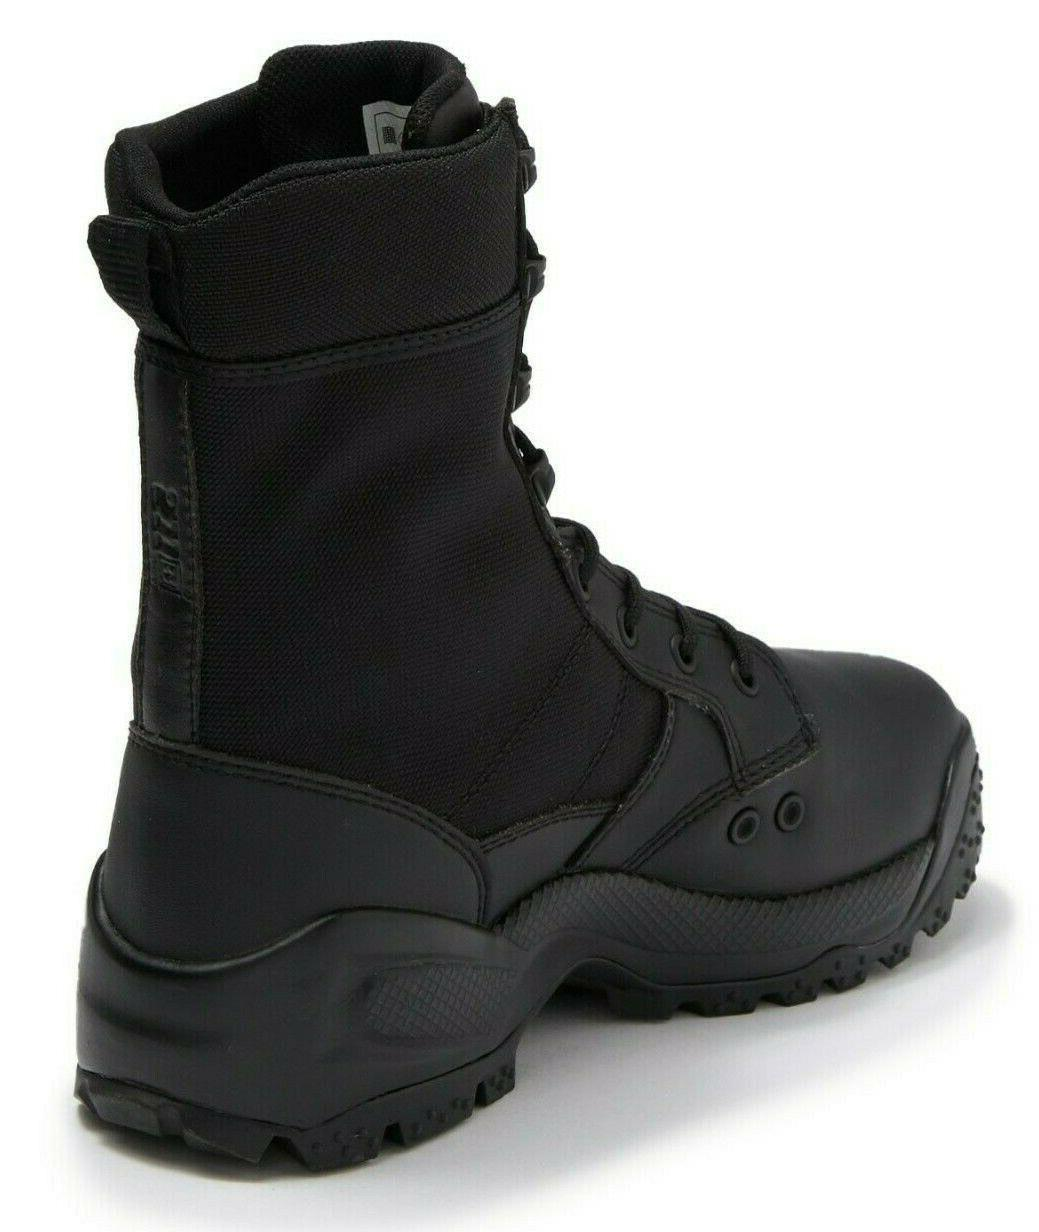 5.11 Boots Size 9 Wide - - 12339PE - BRAND NEW